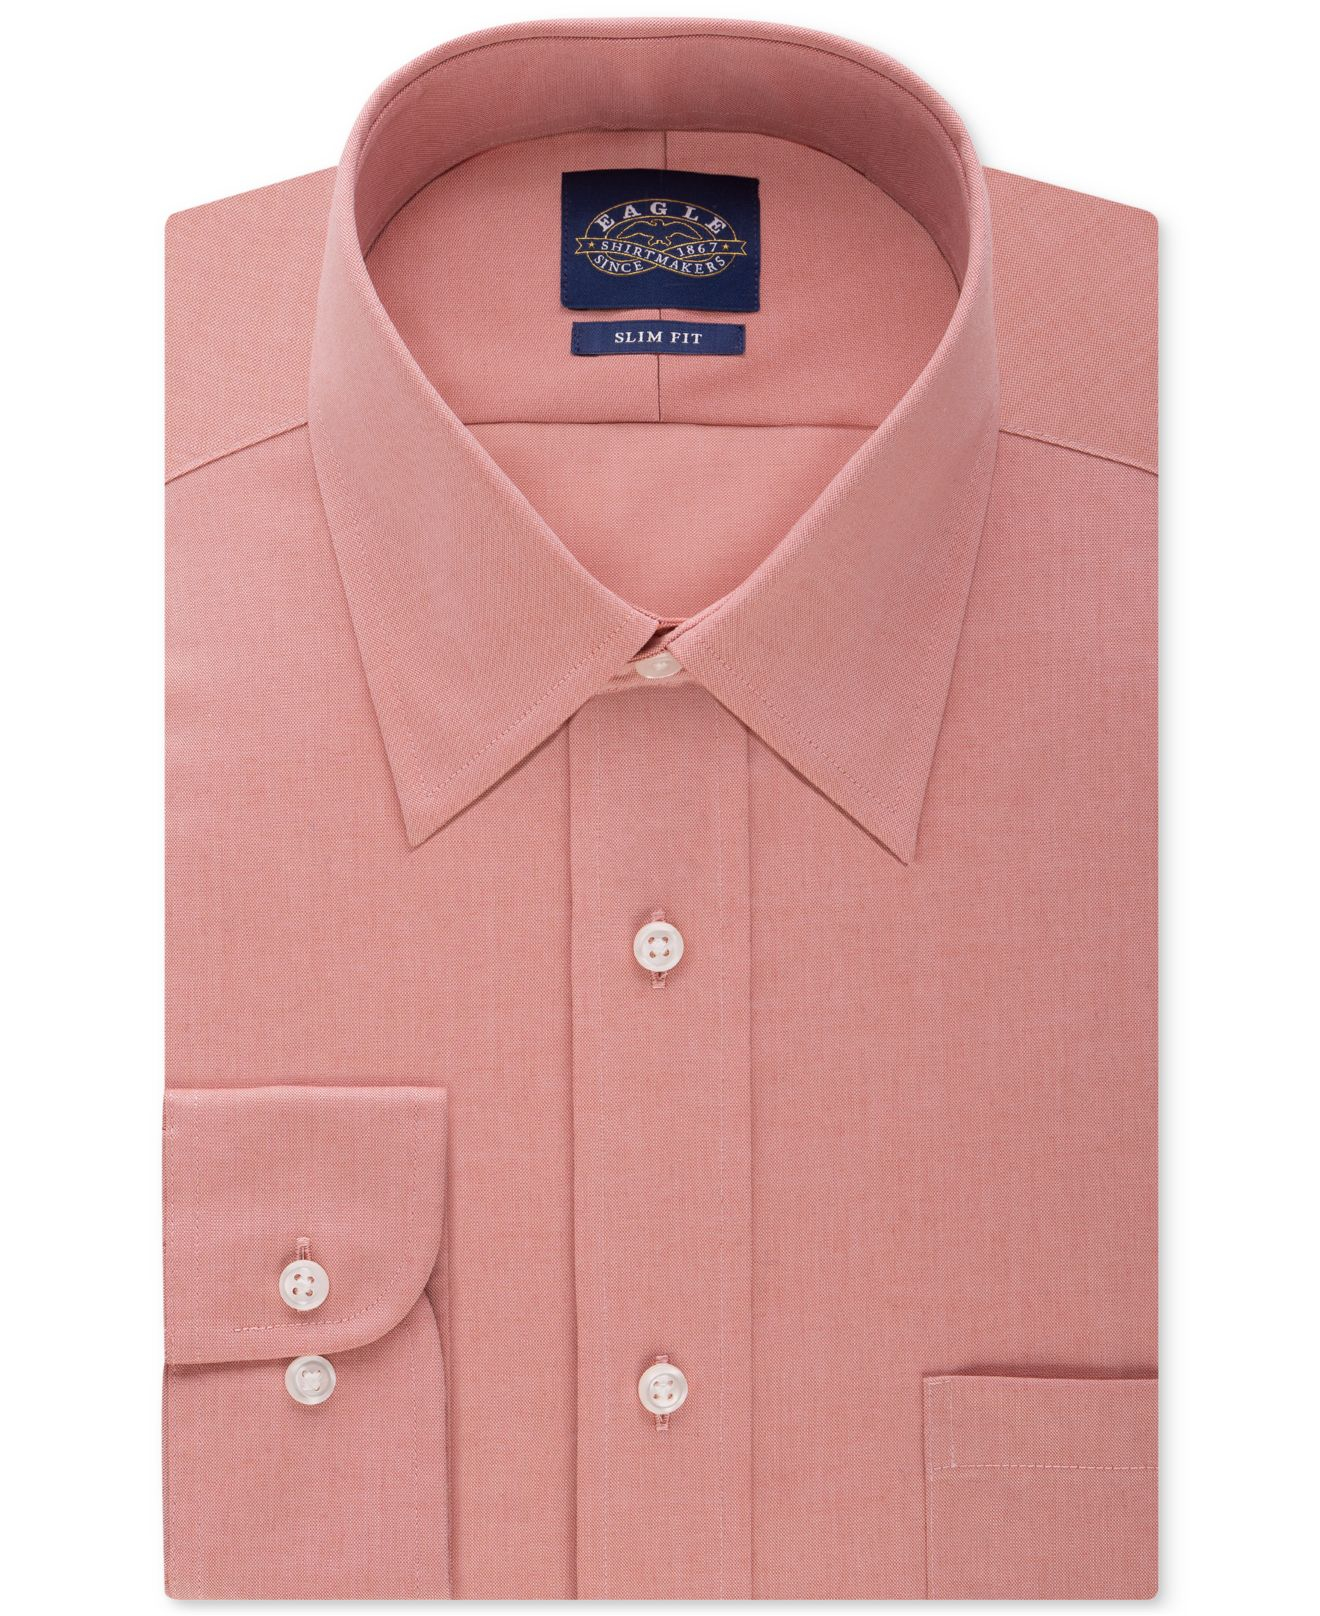 Eagle men 39 s men 39 s classic fit non iron pinpoint dress for Mens pinpoint dress shirts